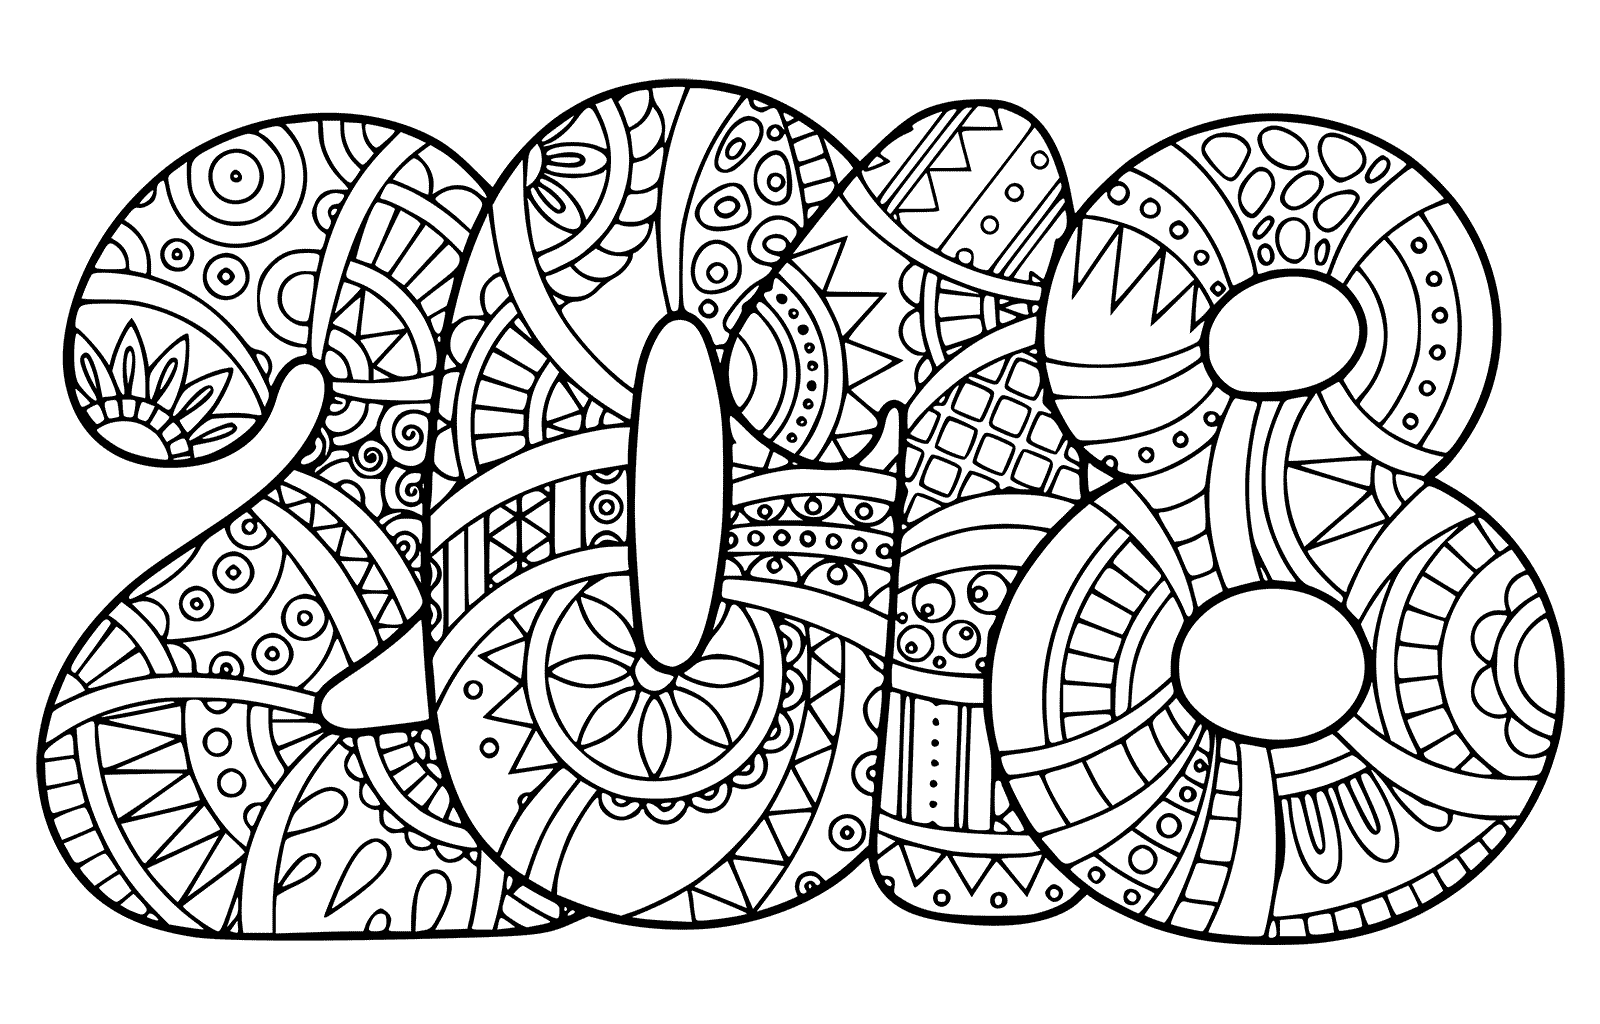 New Year 2018 Coloring Pages Template Image Picture Photo Wallpaper 02